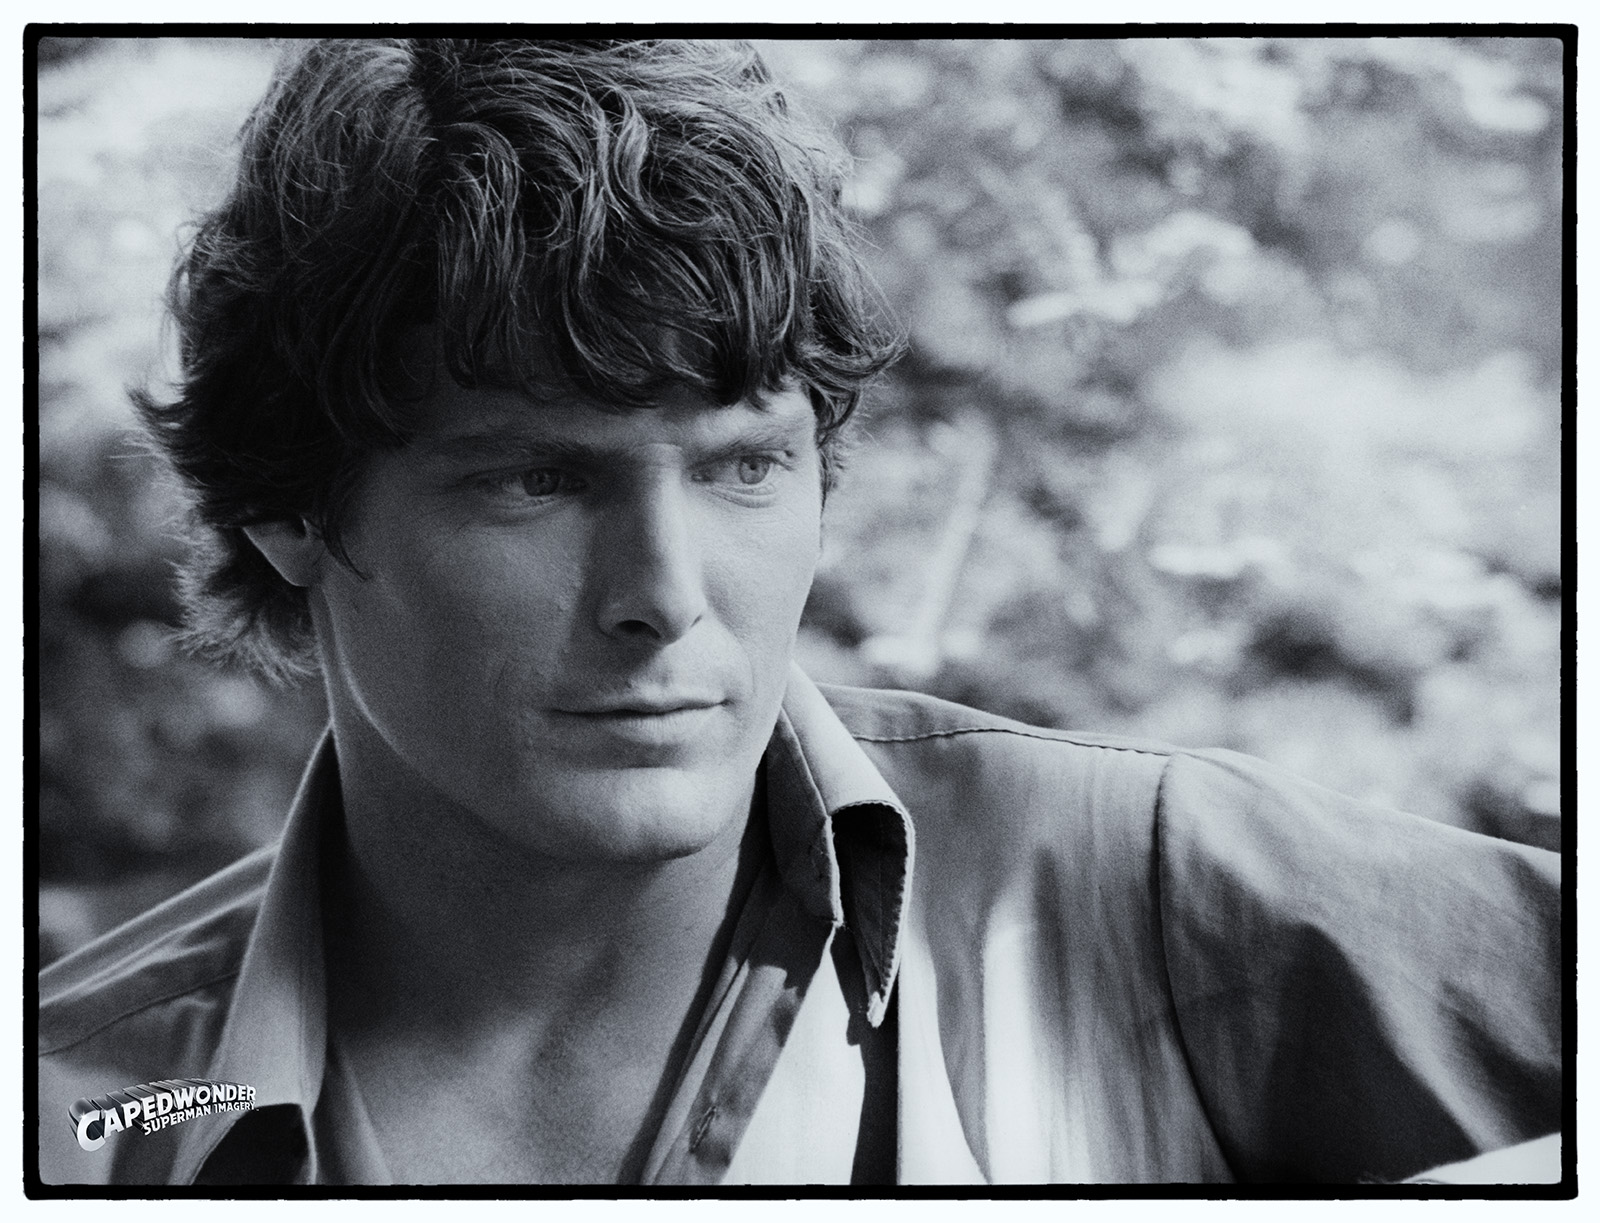 Christopher Reeve in the Summer of 1979